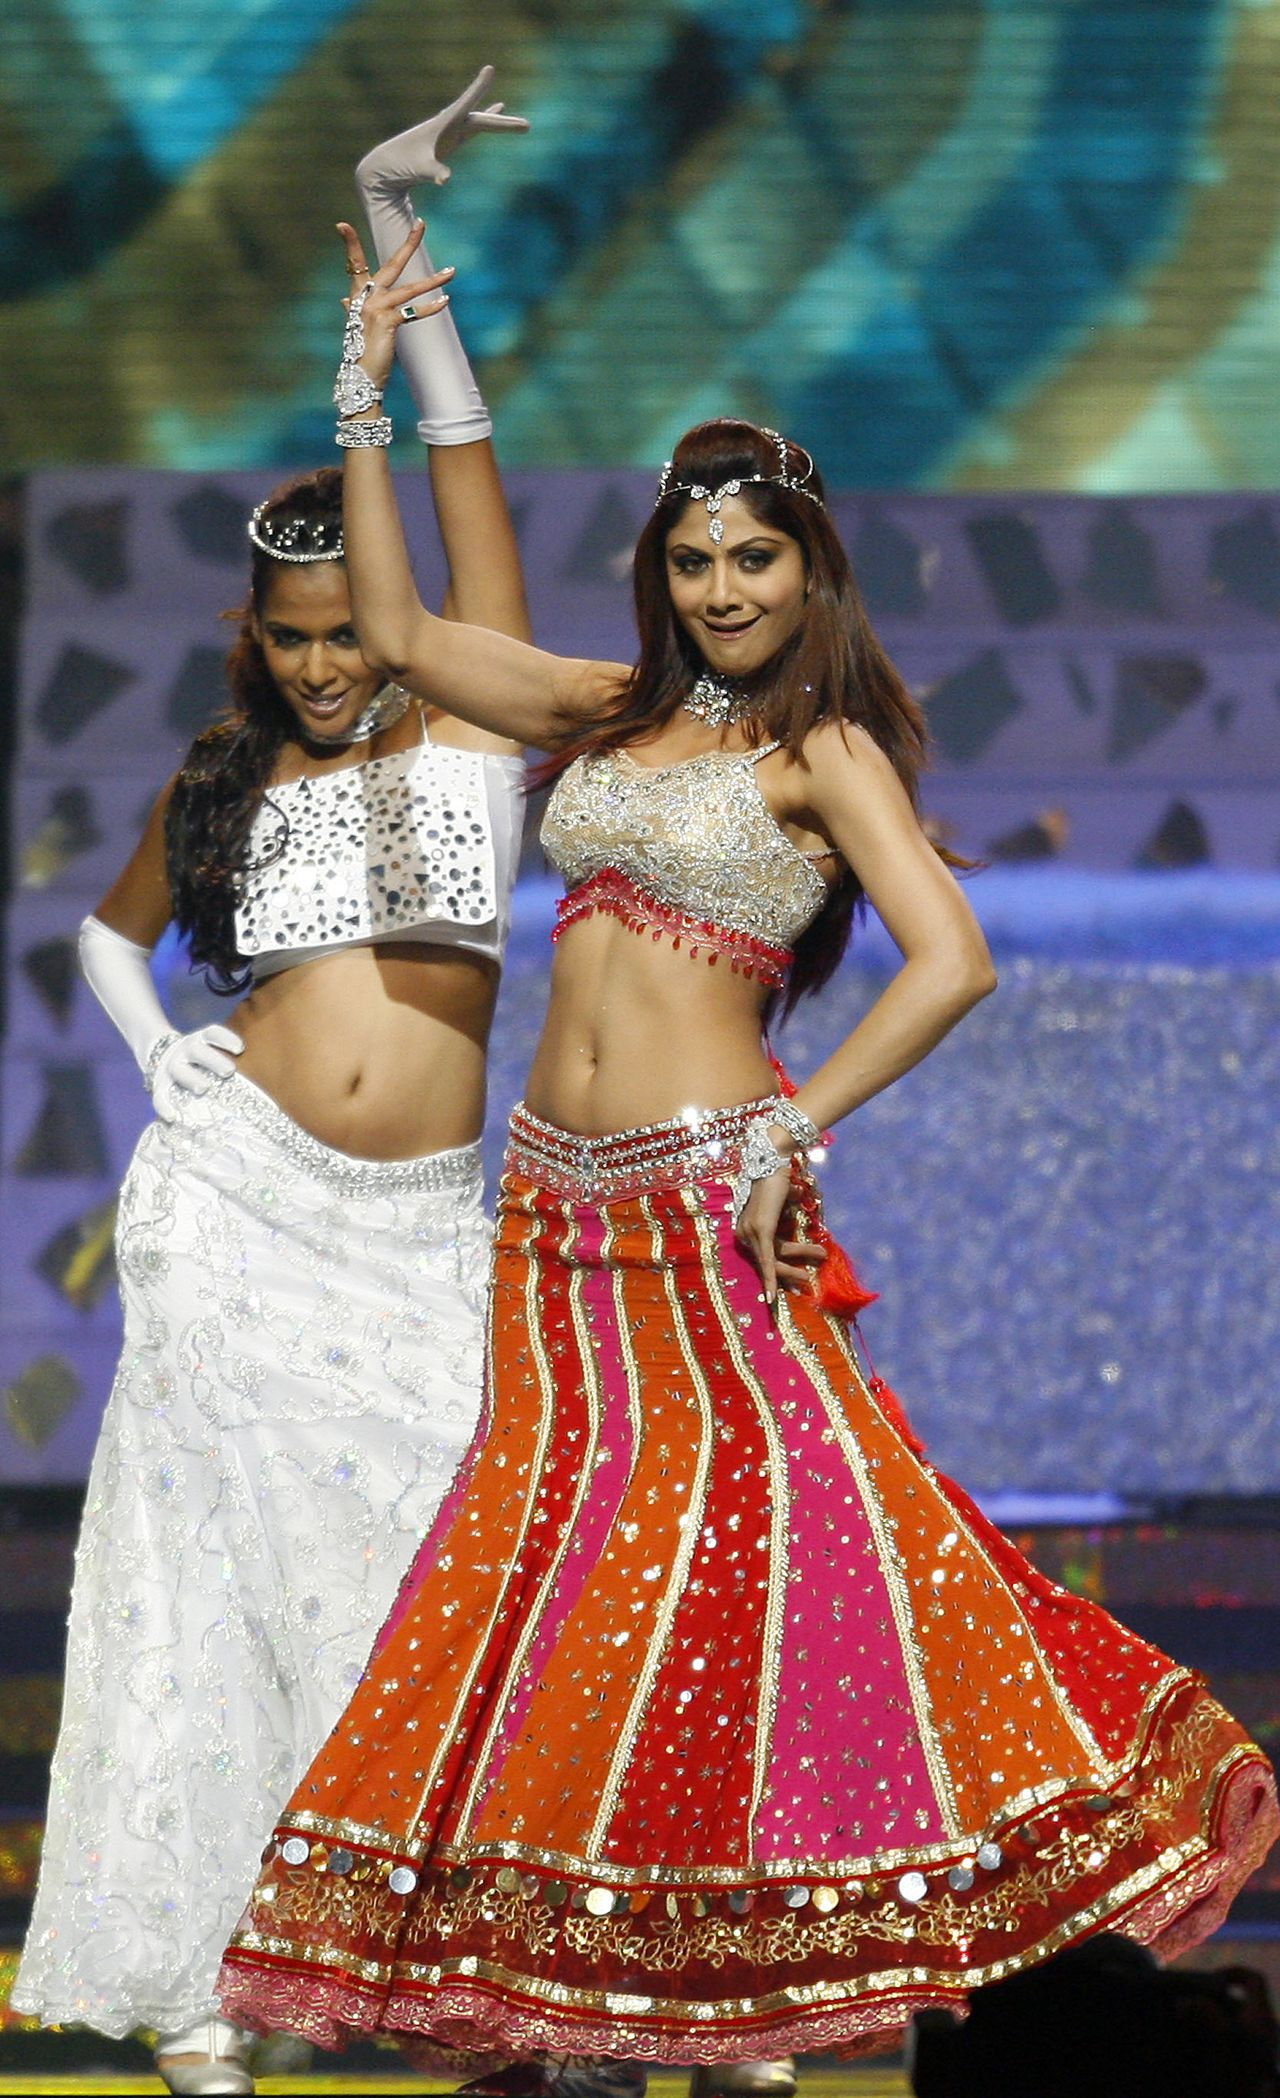 Begrijp de Bollywoodster. Foto AP Indian actress and model Shilpa Shetty (R) performs during the International Indian Film Academy Awards (IIFAs) ceremony at the Hallam Arena in Sheffield, northern England, 09 June 2007. The IIFA awards, known as the Bollywood Oscars, which run to 10 June 2007, are taking place in Yorkshire and will likely be watched on television by some 500 million people around the world. AFP PHOTO/LEON NEAL